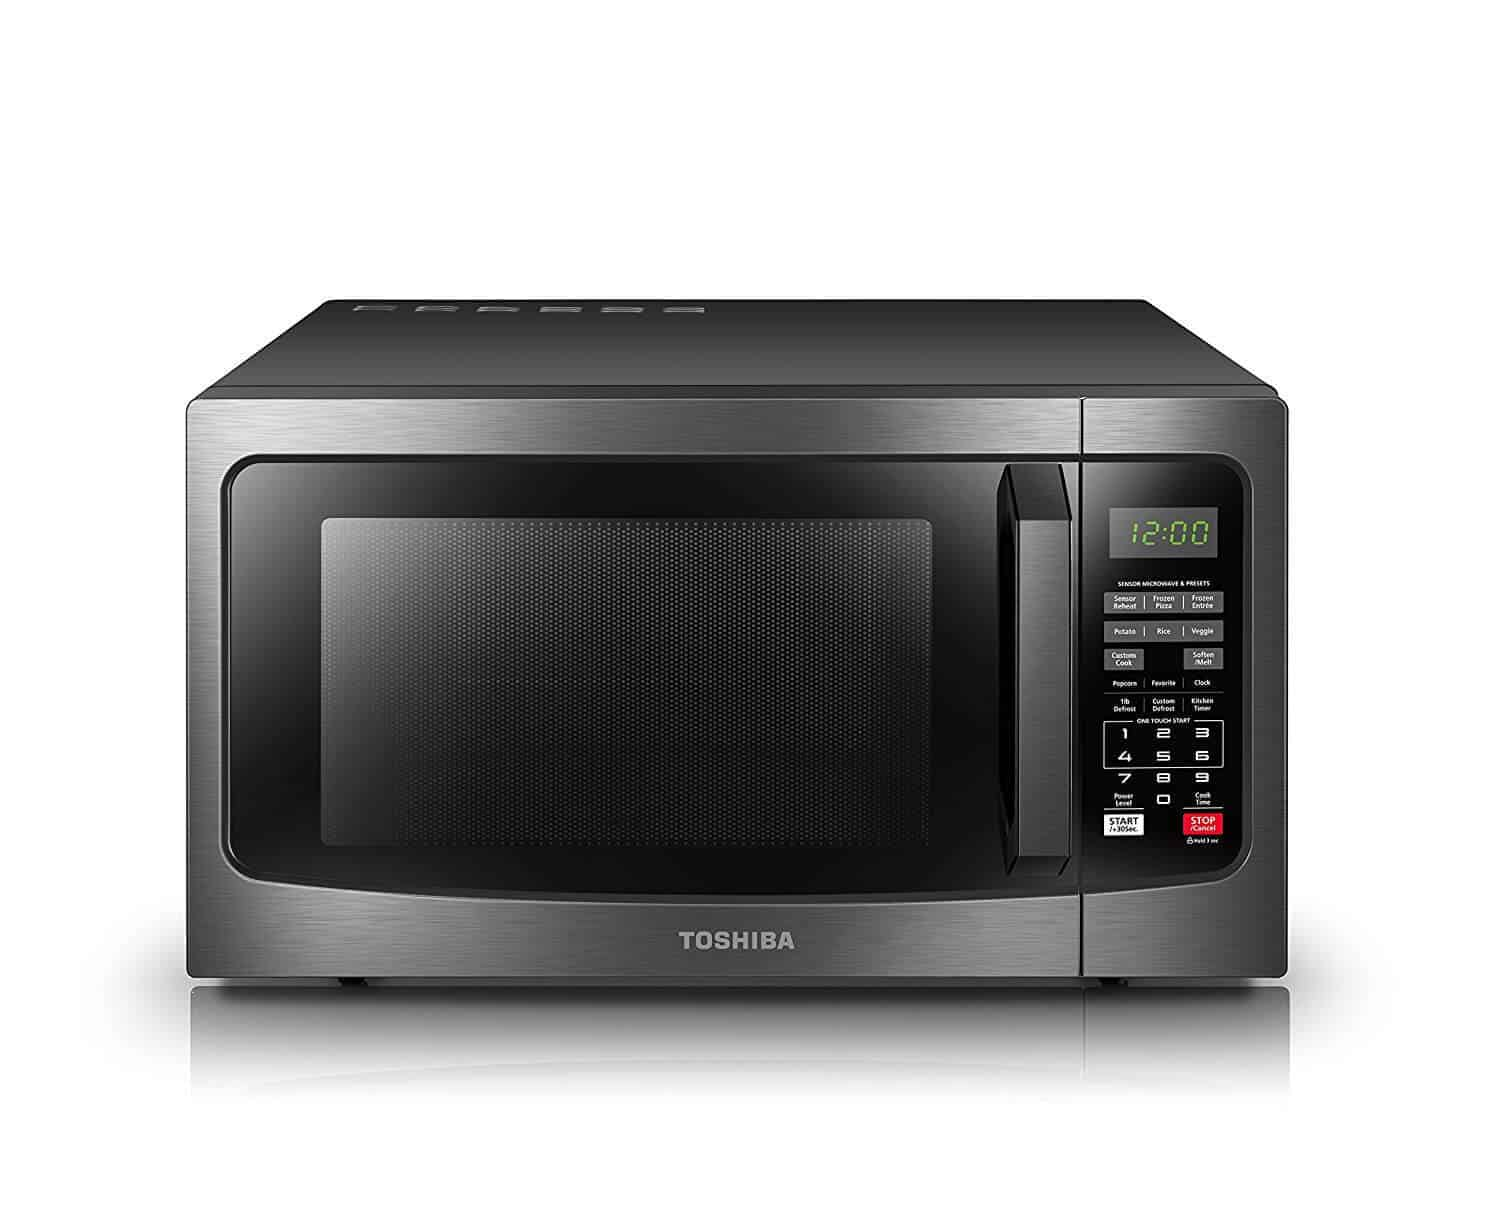 image of the Toshiba EM131A5C-BS Microwave